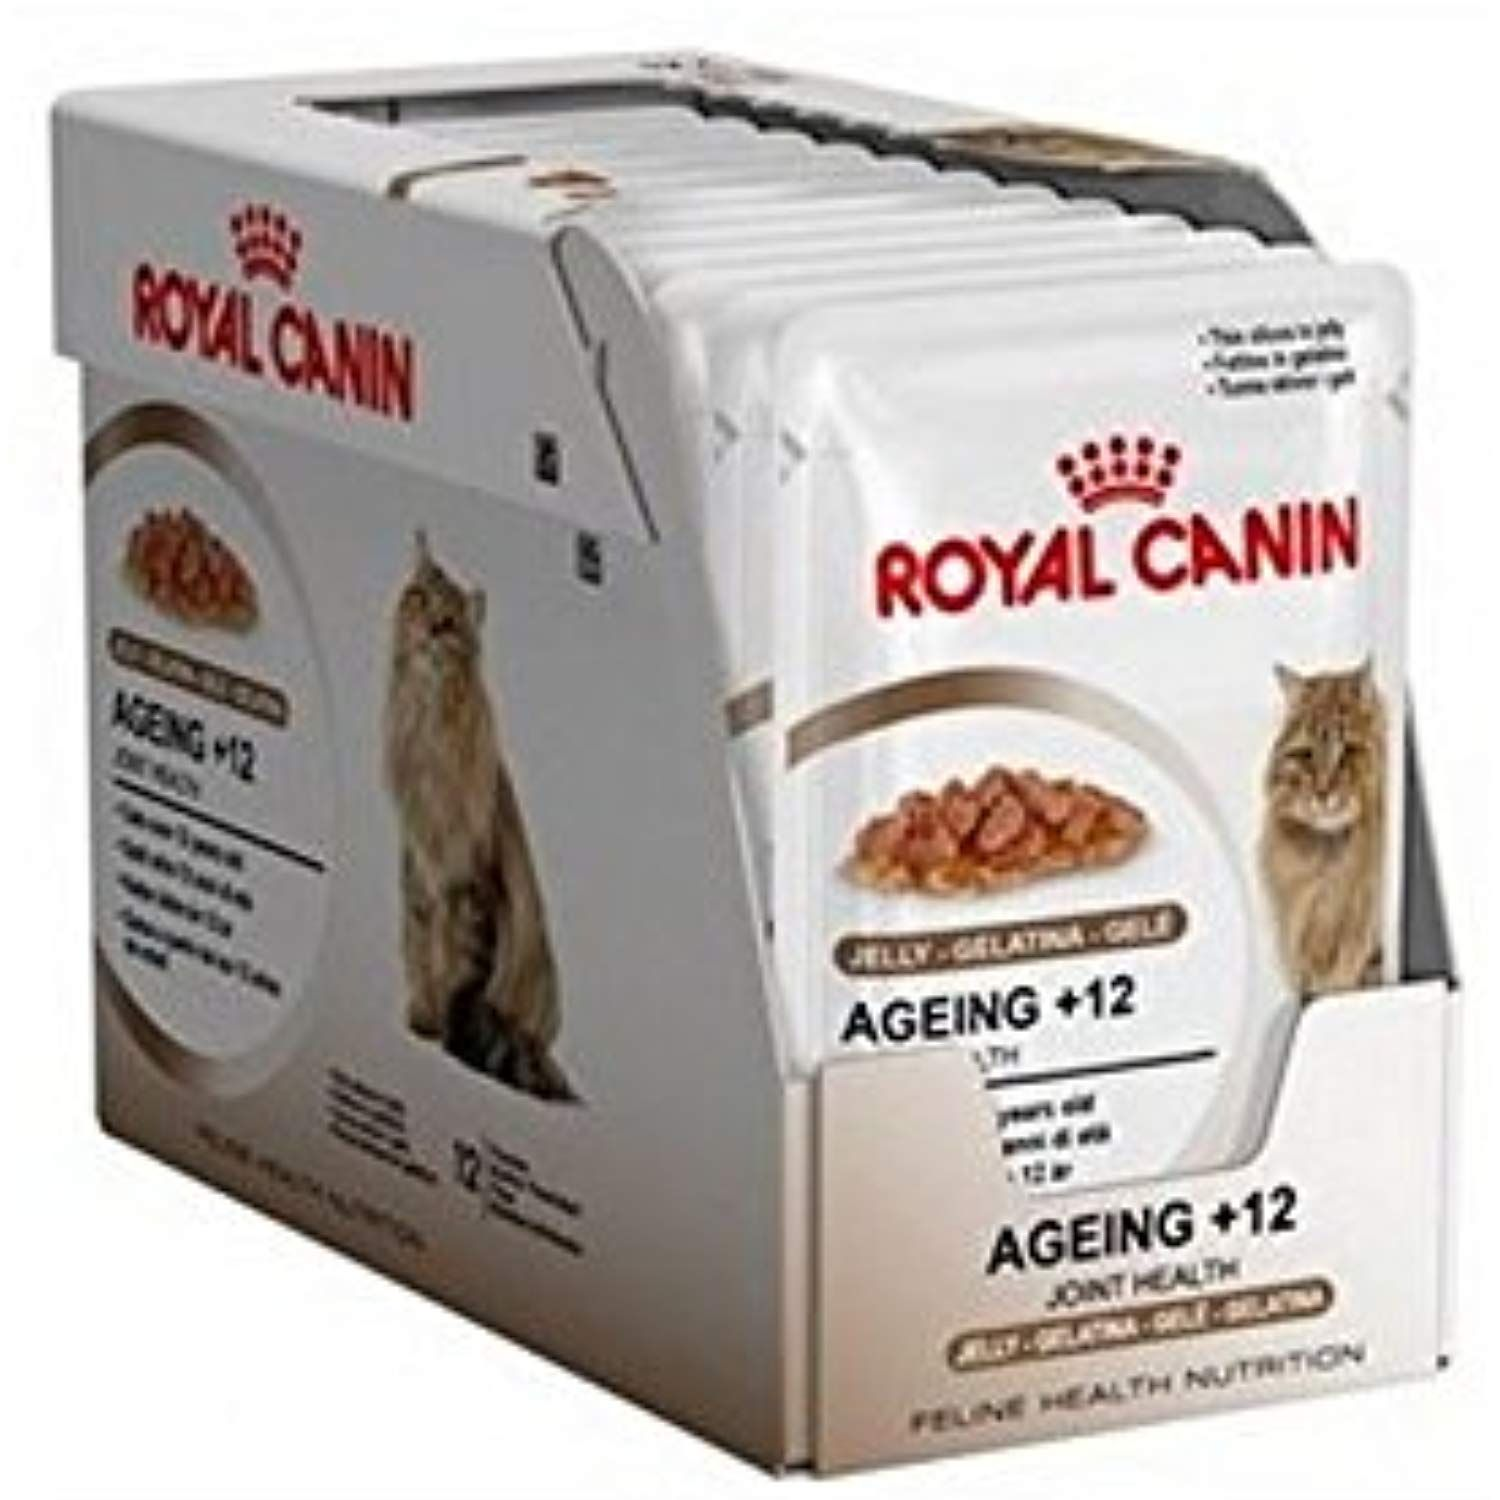 Royal canin ageing 12 cat food jelly pouch 12x85g 102kg